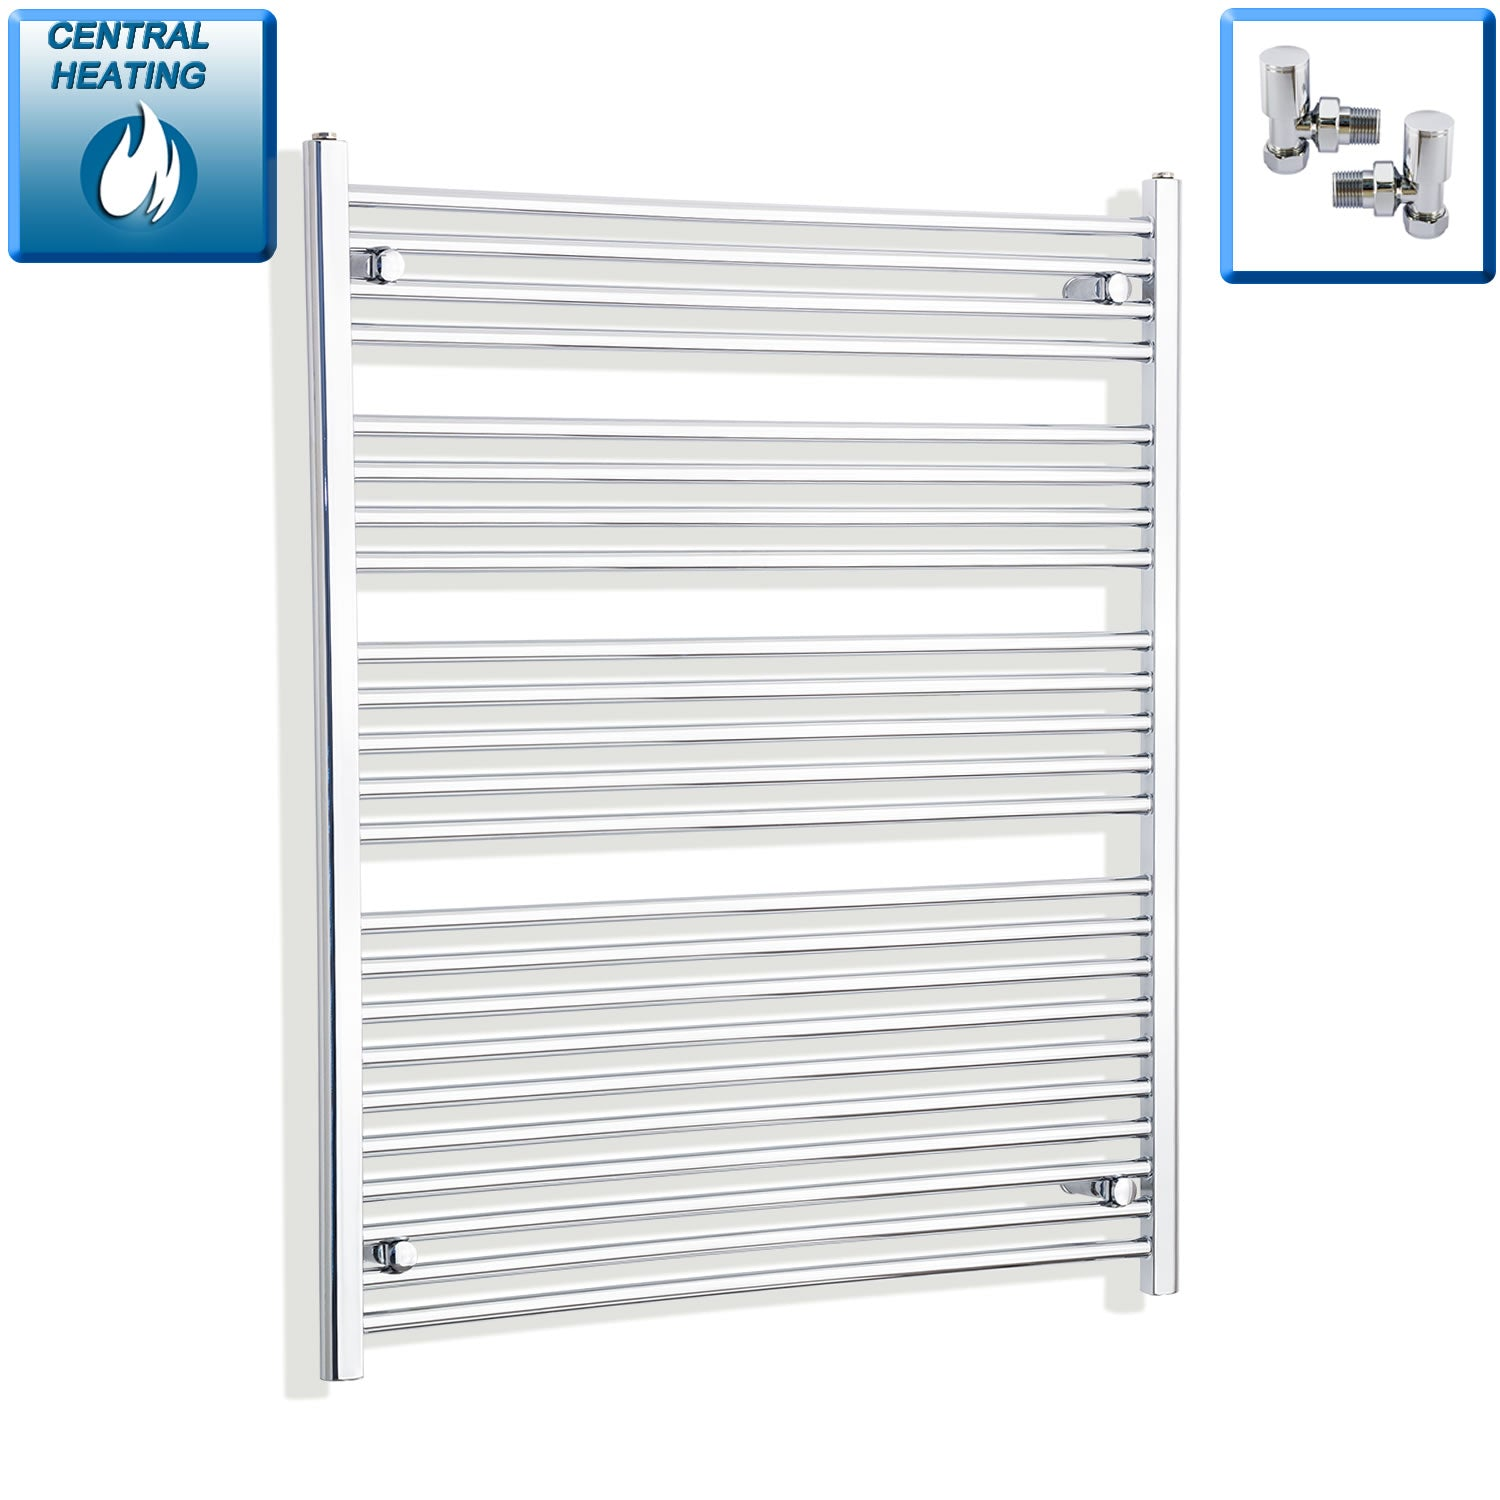 1000mm Wide 1200mm High Flat Chrome Heated Towel Rail Radiator HTR,With Angled Valve